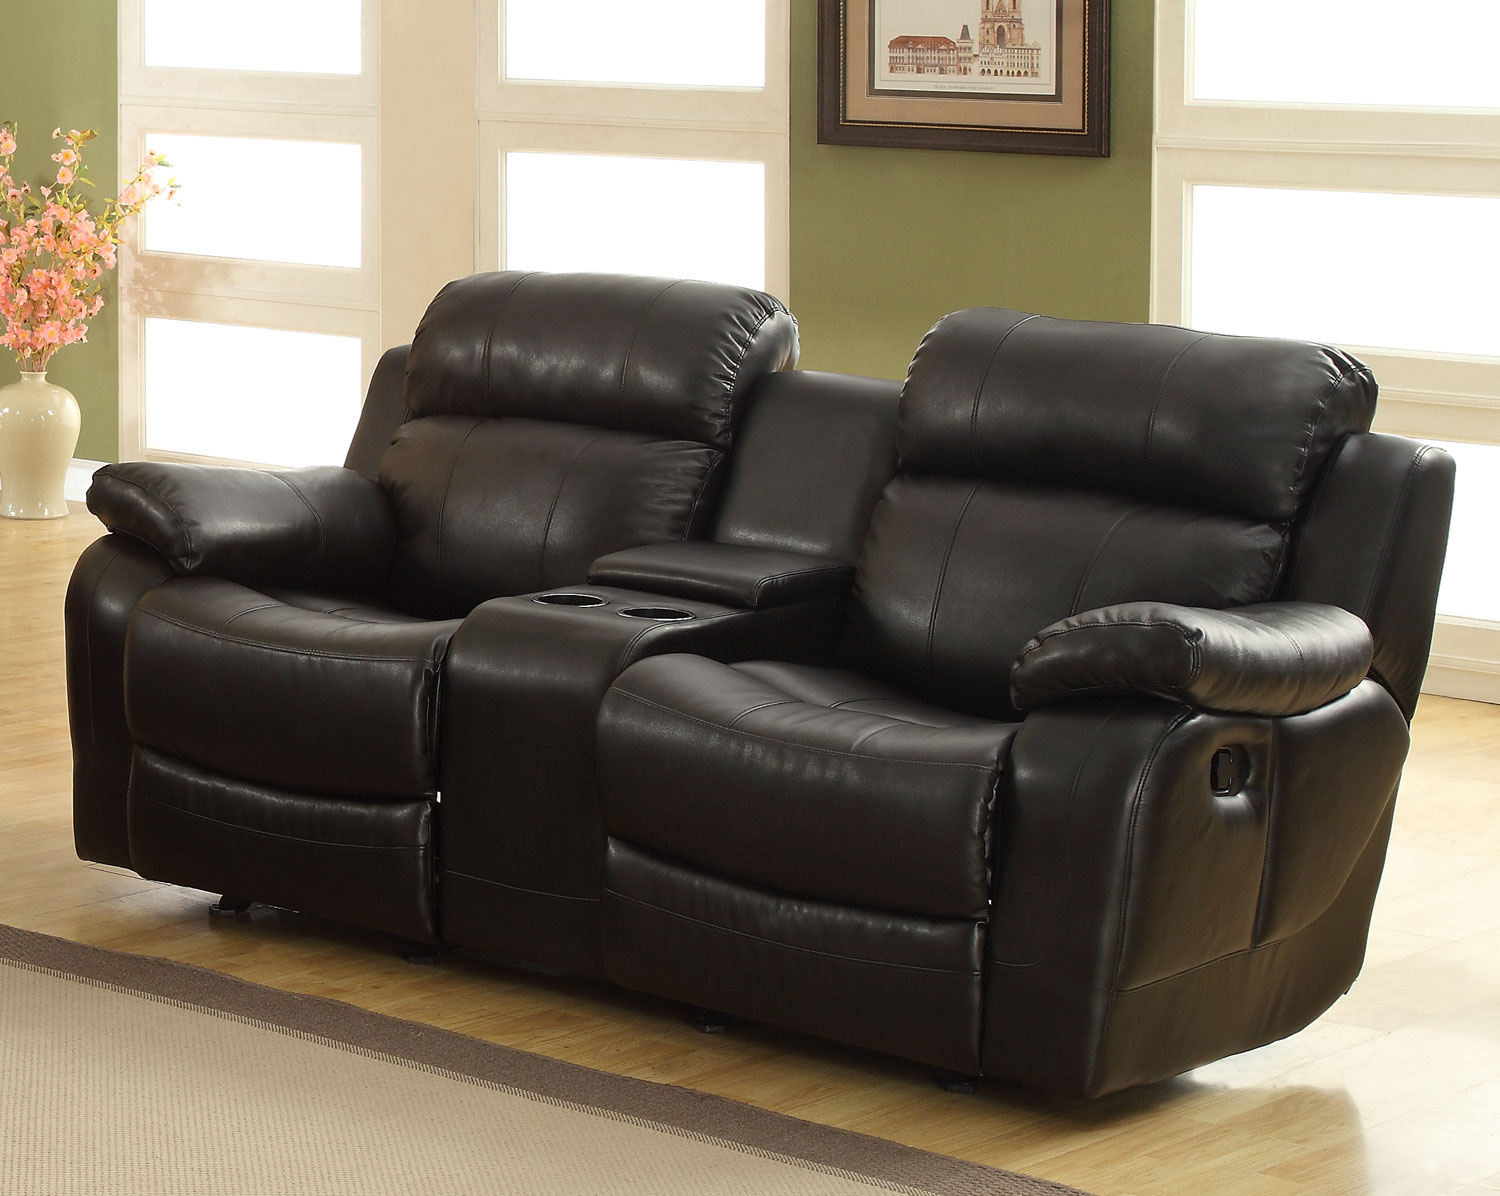 Homelegance Marille Love Seat Glider Recliner with Center Console - Black - Bonded Leather Match